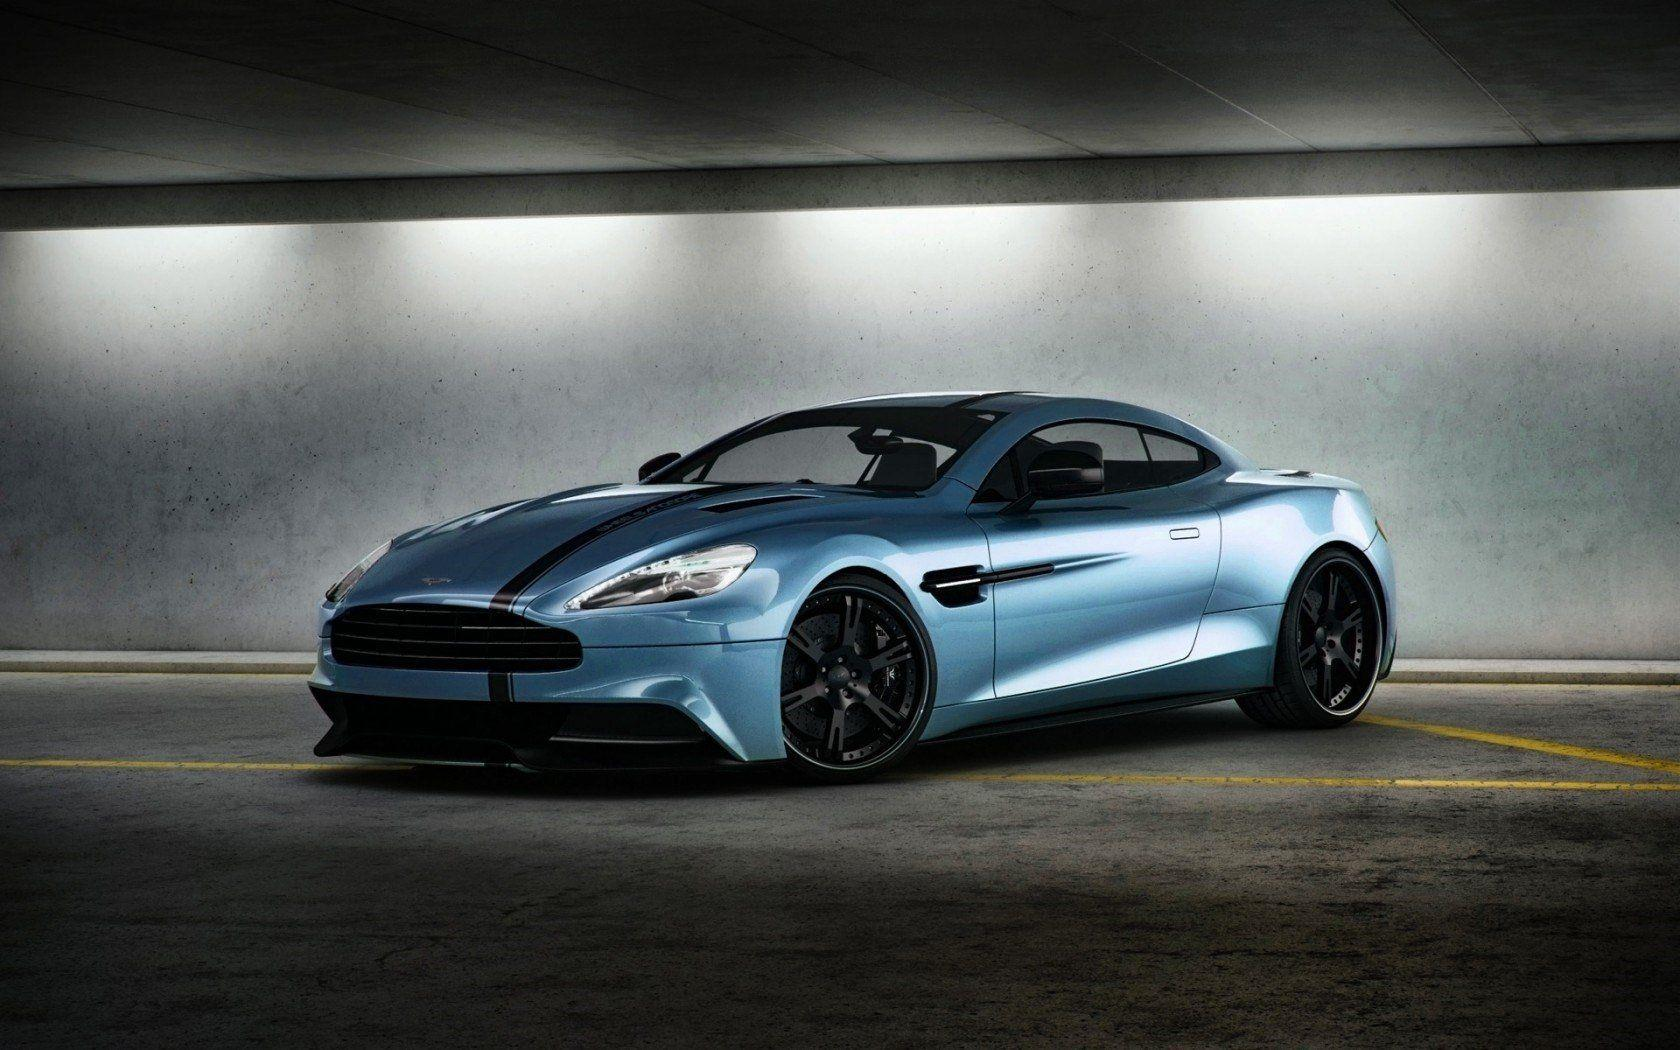 Aston Martin Vanquish Wallpaper and Background Image | 1680x1050 ...